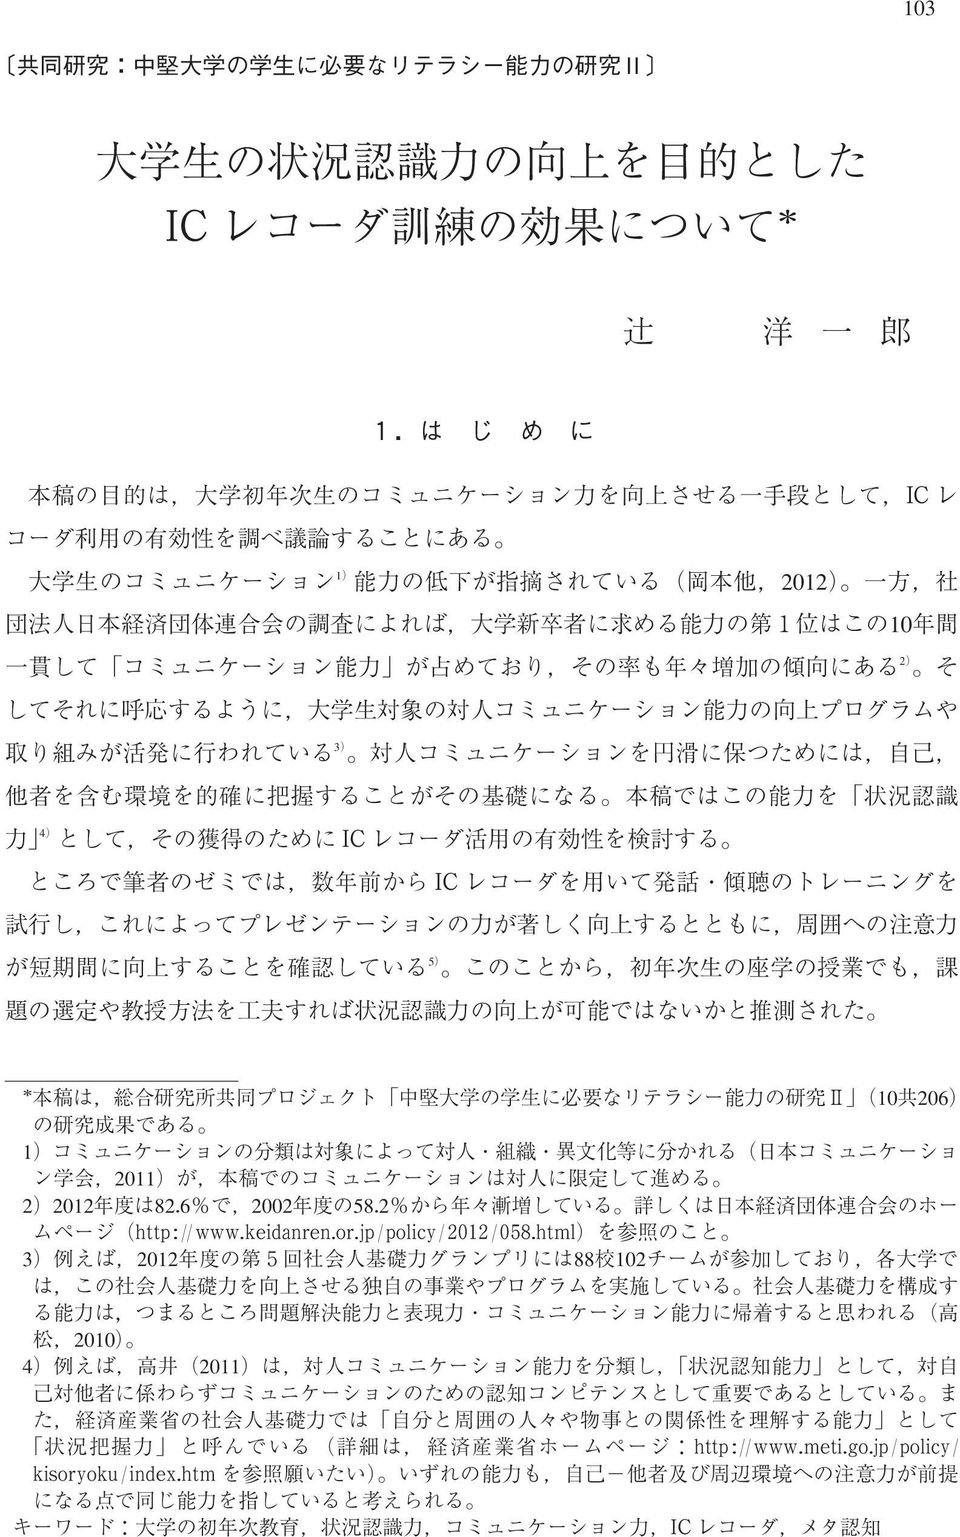 jp / policy / 2012 / 058.